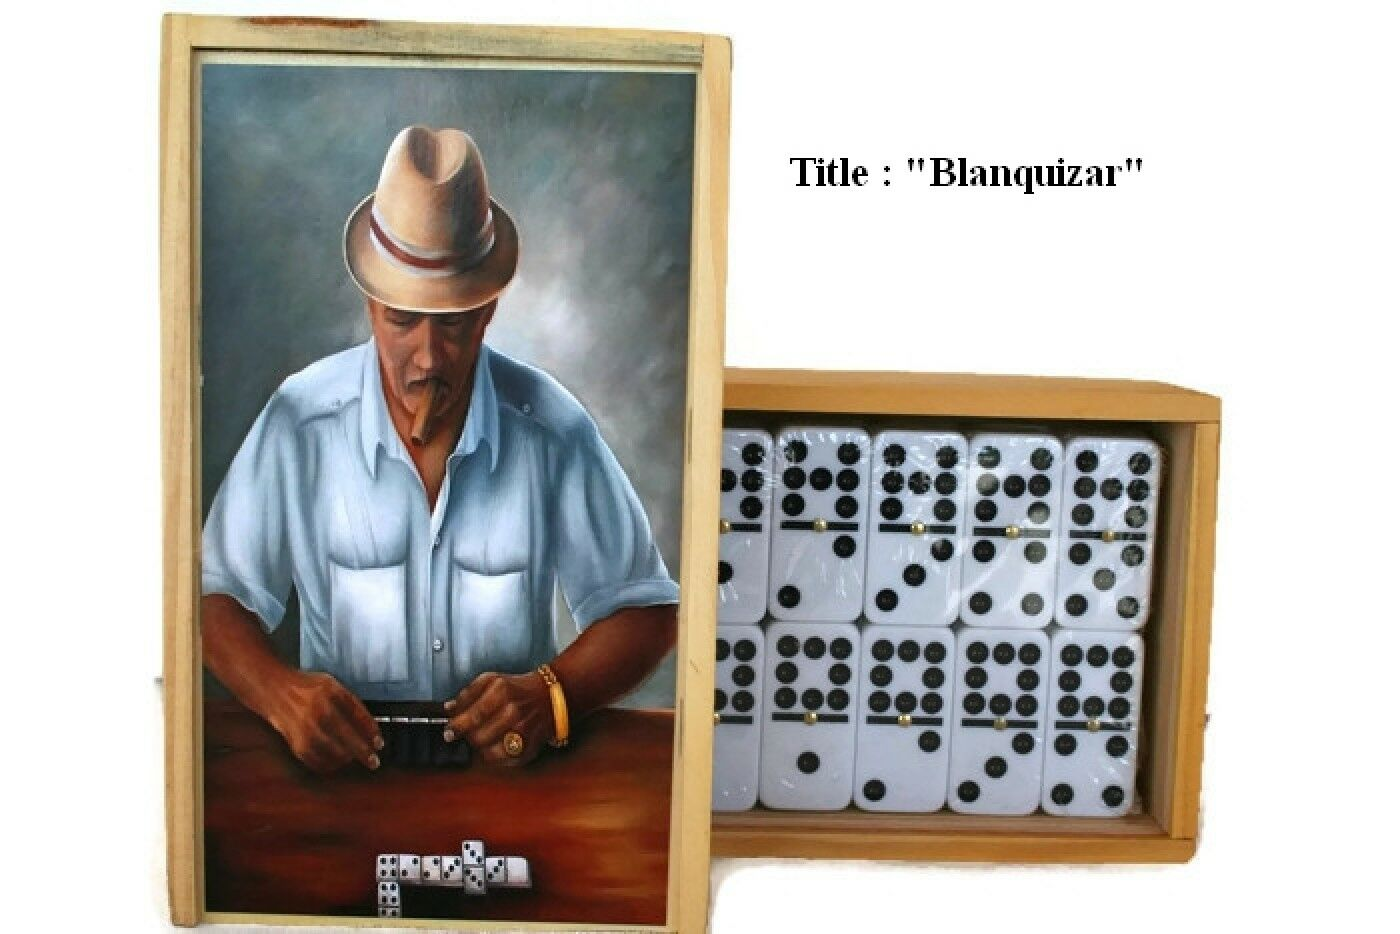 Gift ideas  Oil Painting  Blanquizar  on Top Professional Domino double Nine